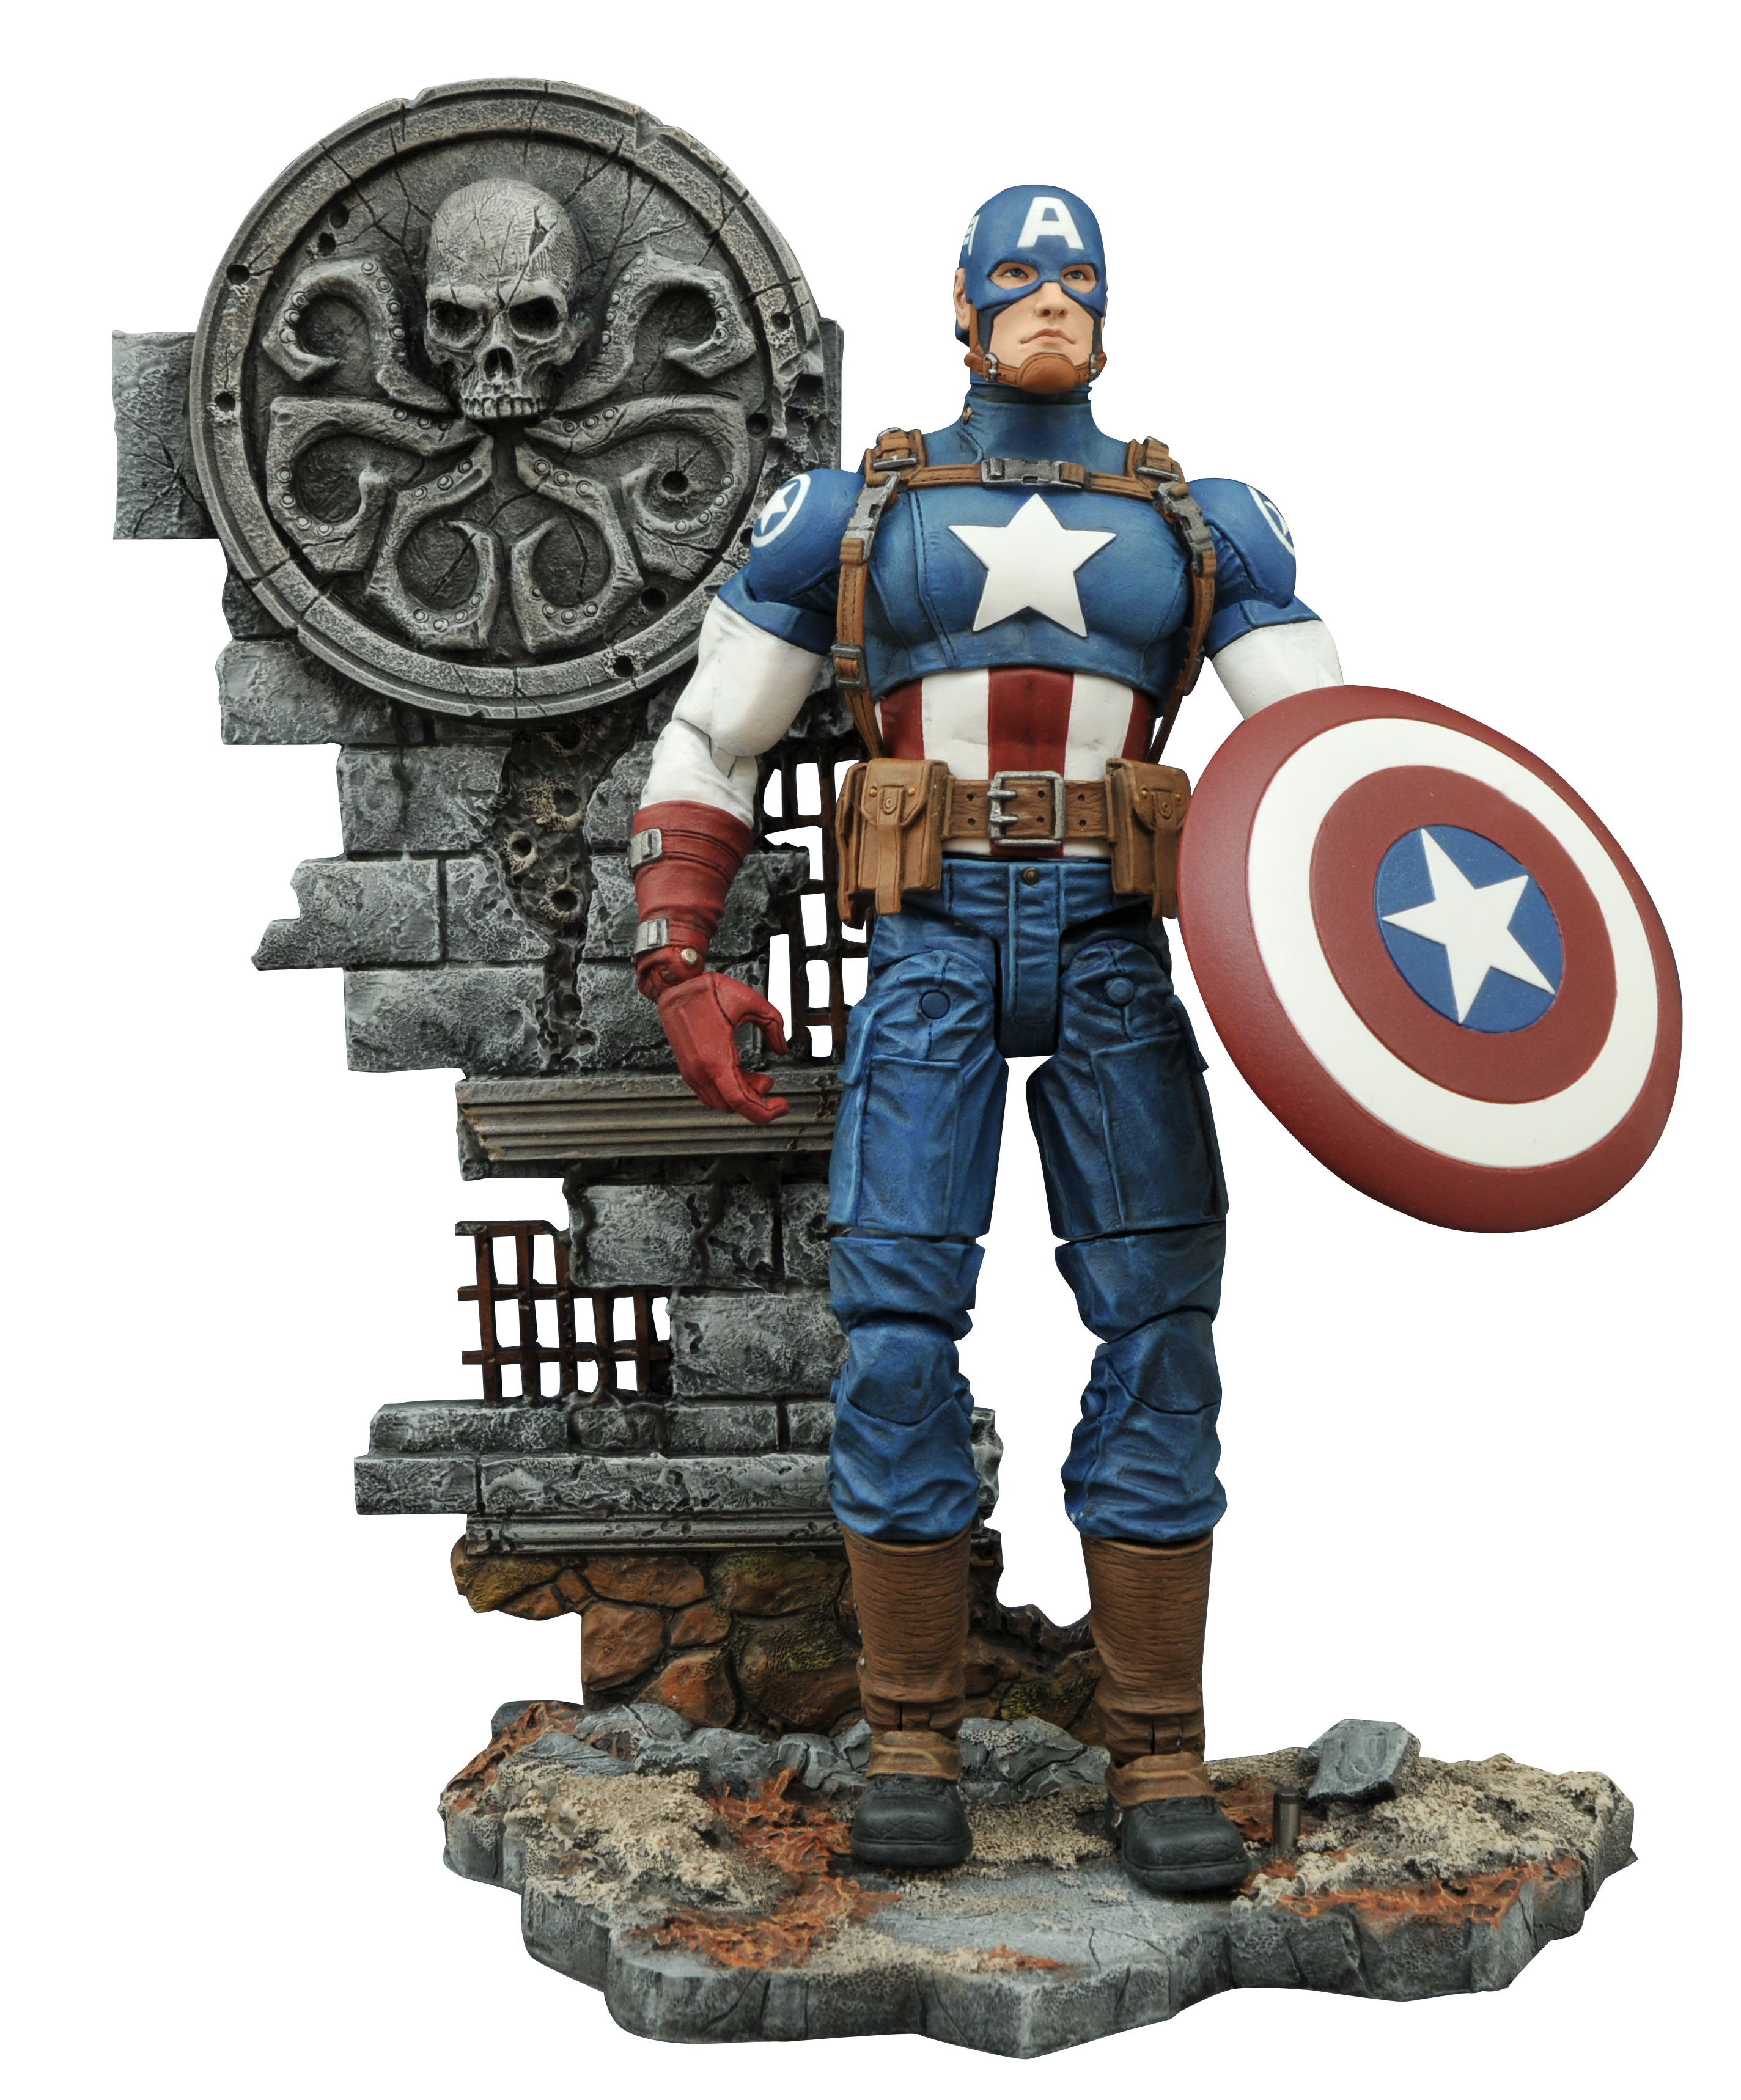 Diamond Select Announces Disney Store/Marvel Shop Exclusive